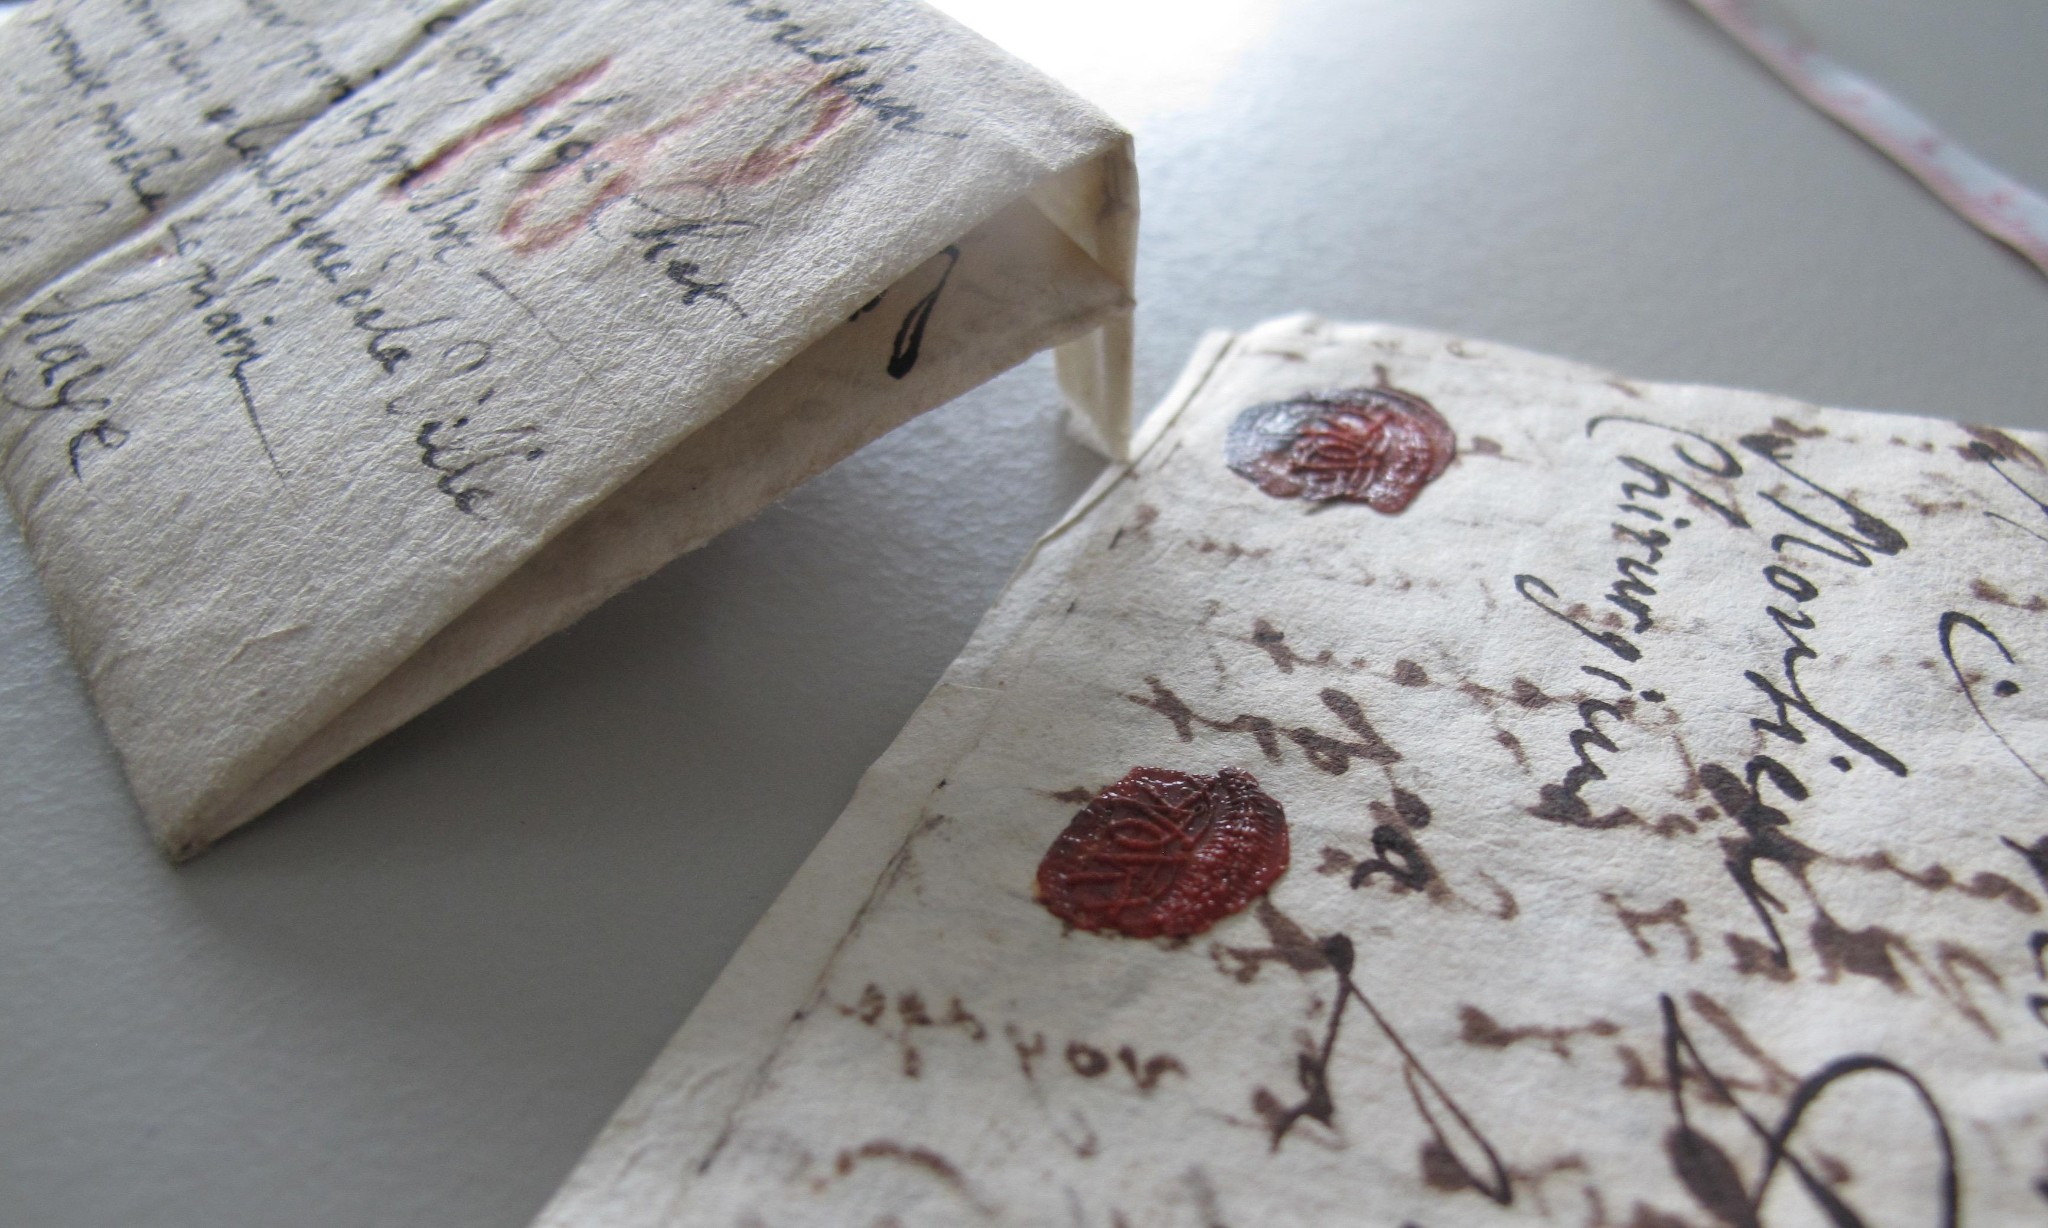 Undelivered letters shed light on 17th-century society